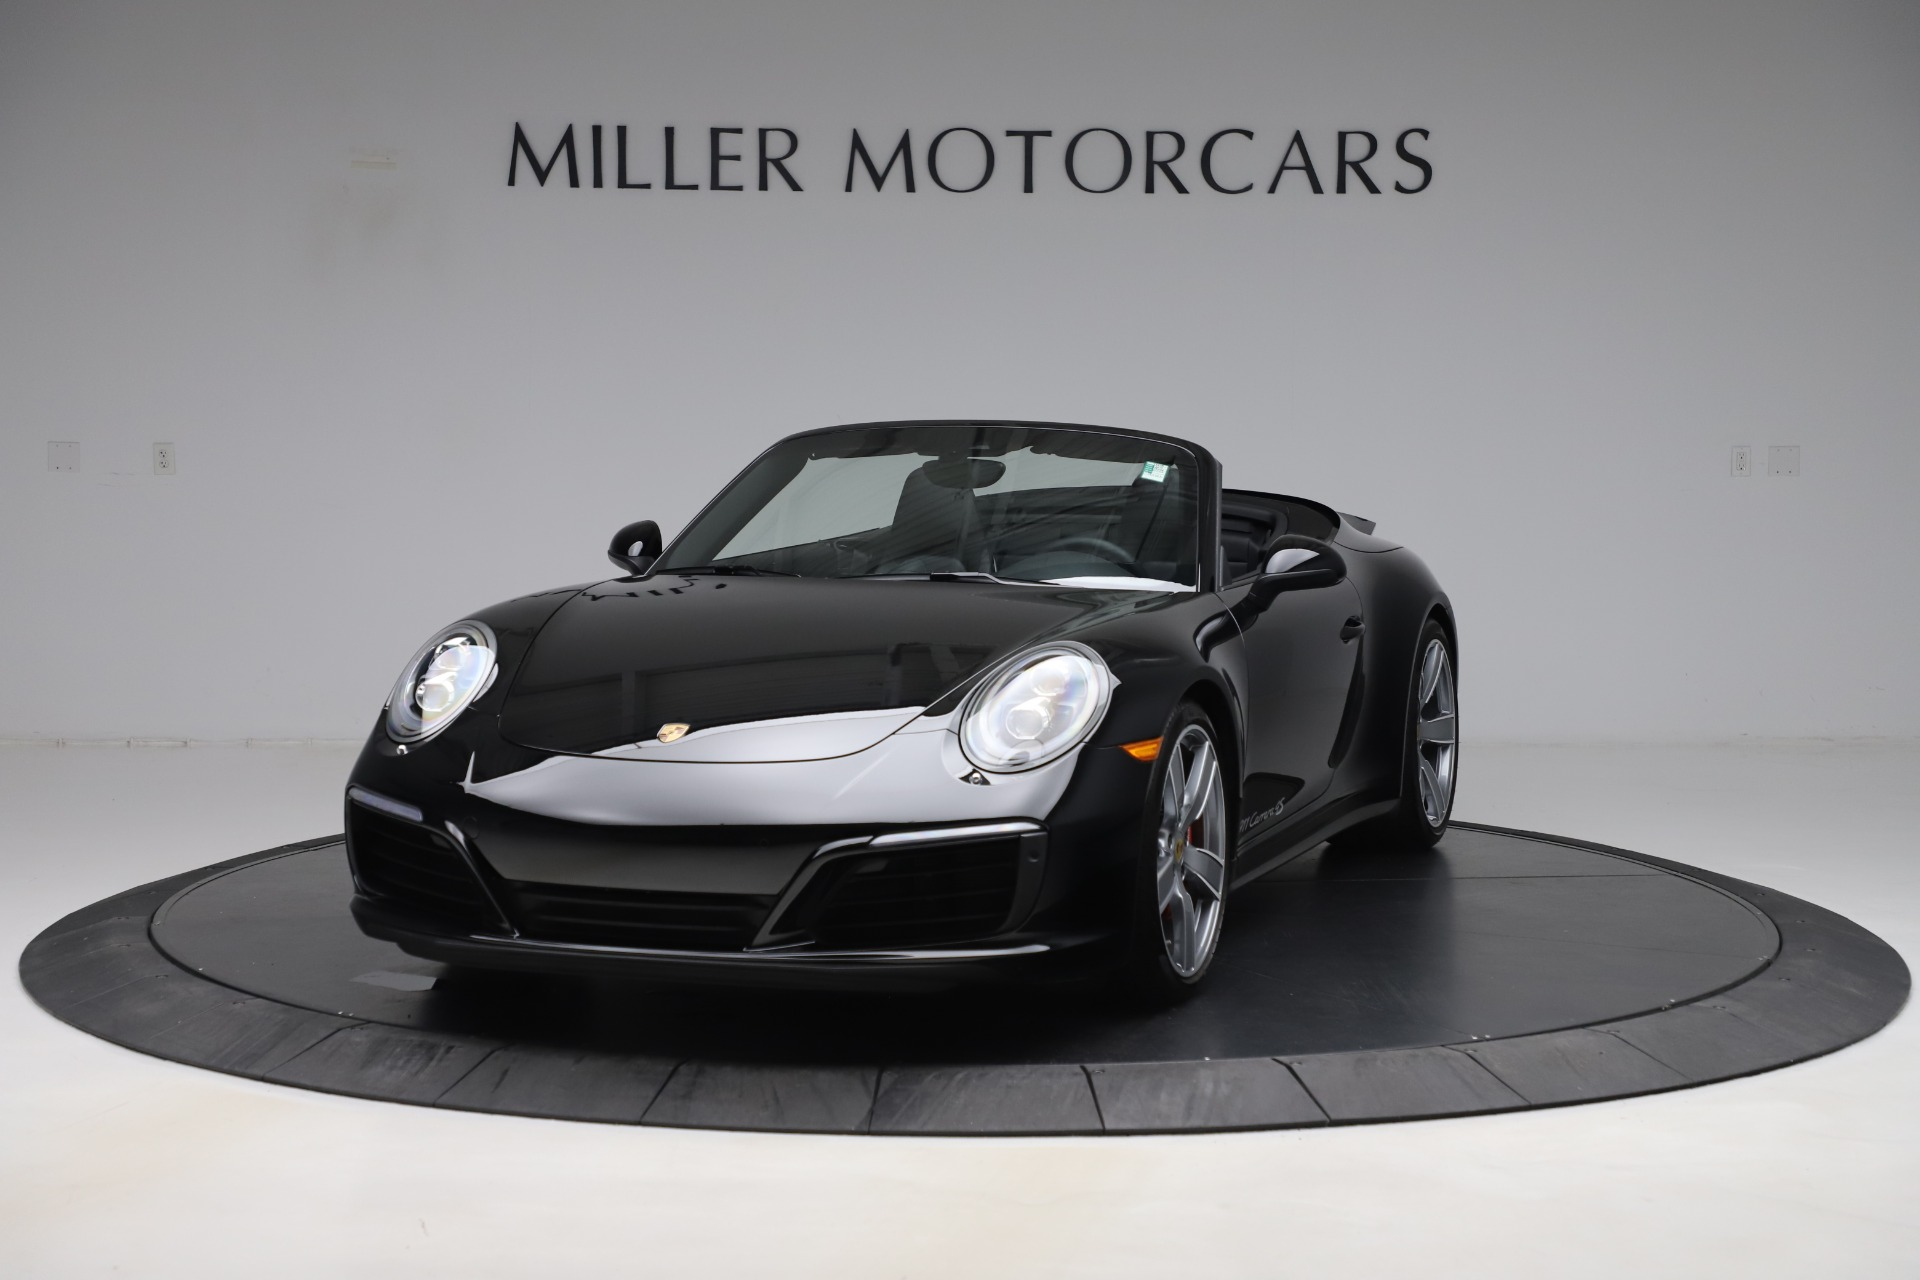 Used 2017 Porsche 911 Carrera 4S for sale $109,900 at Aston Martin of Greenwich in Greenwich CT 06830 1